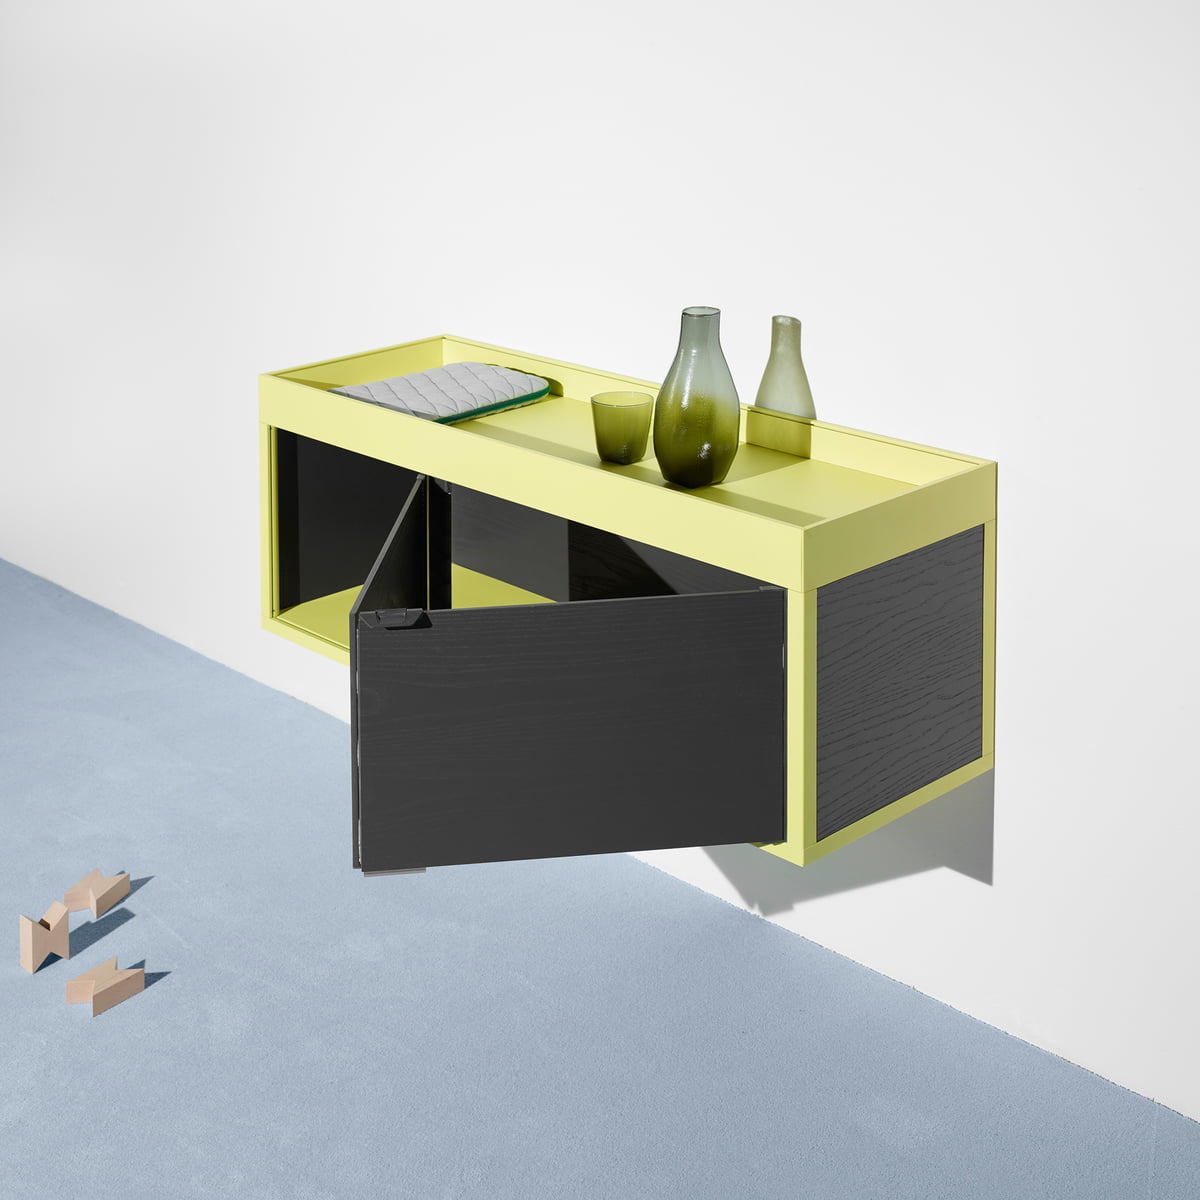 New Order Wall-Mounted Shelf by Hay in the design shop